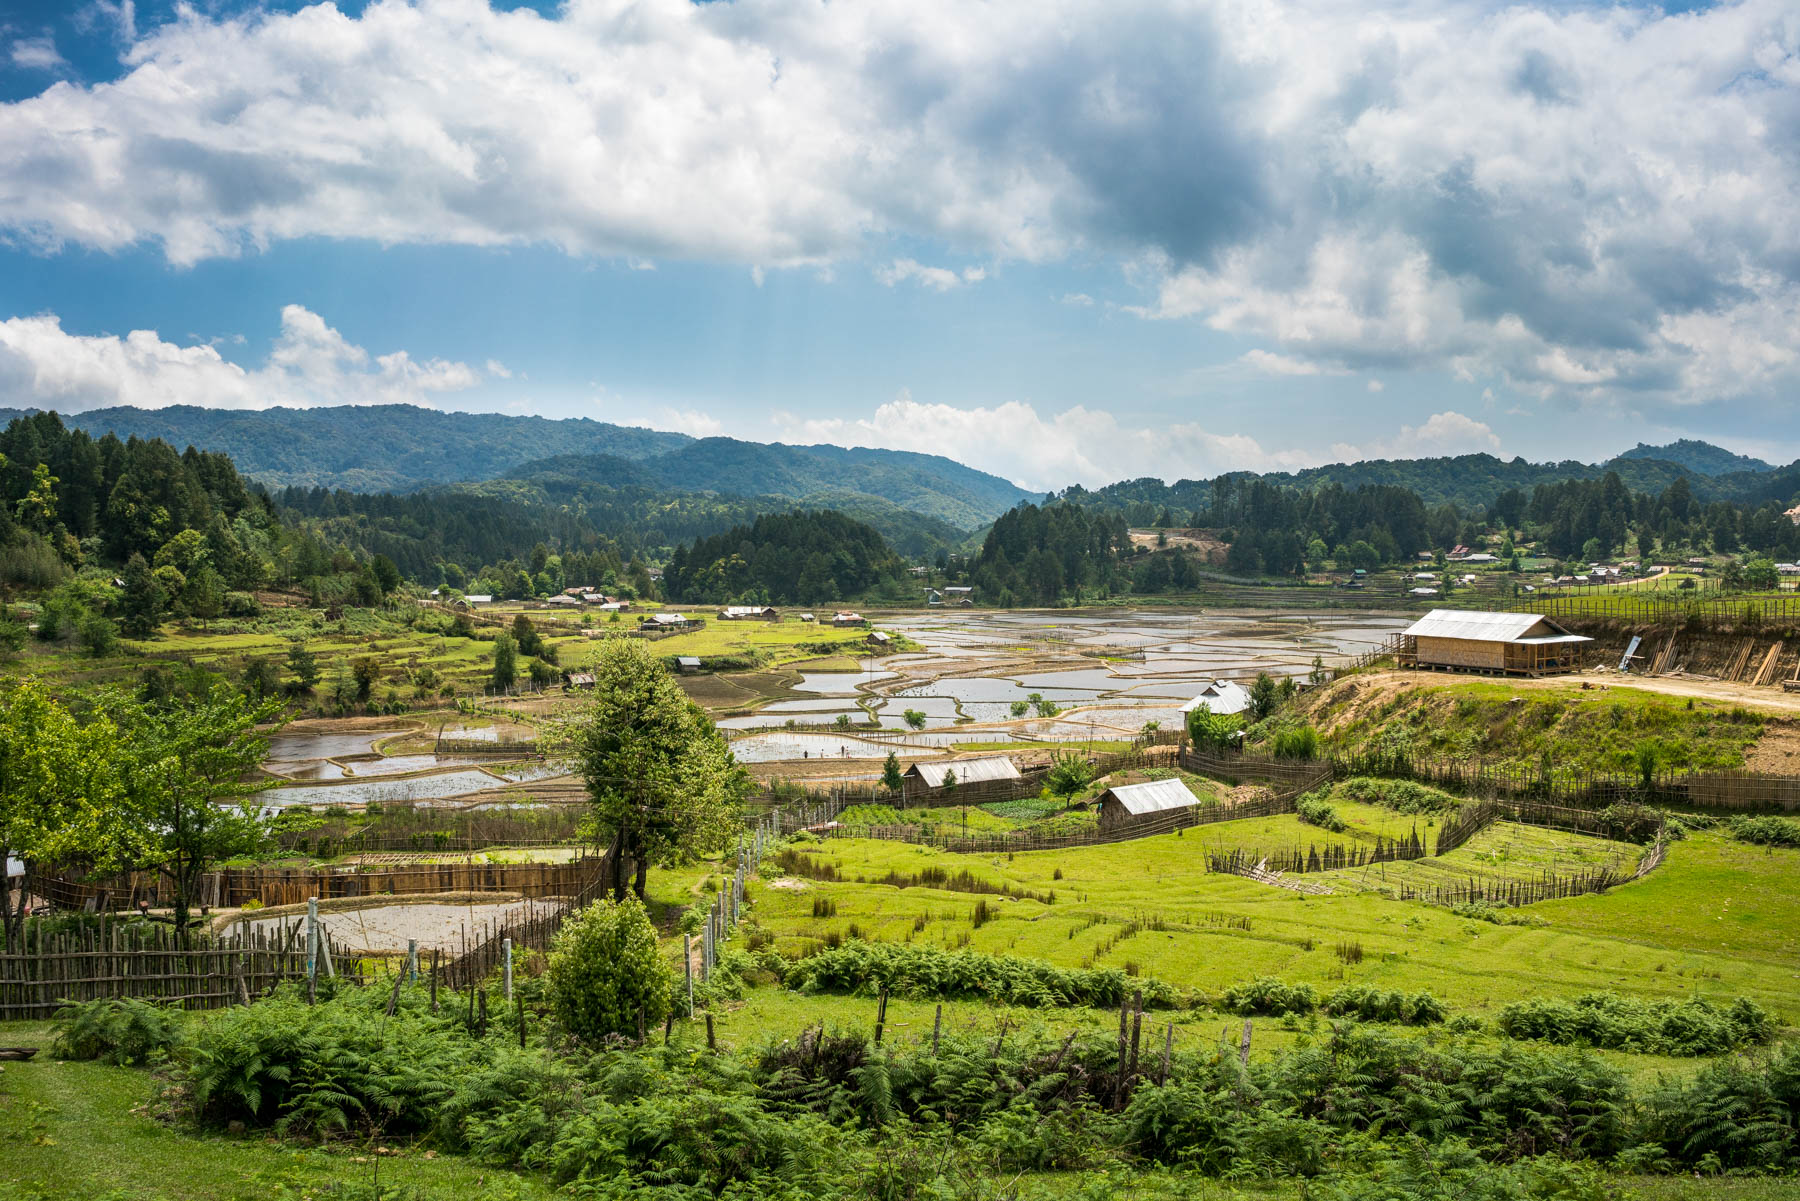 Backpacking Arunachal Pradesh travel guide - The picturesque Ziro Valley - Lost With Purpose